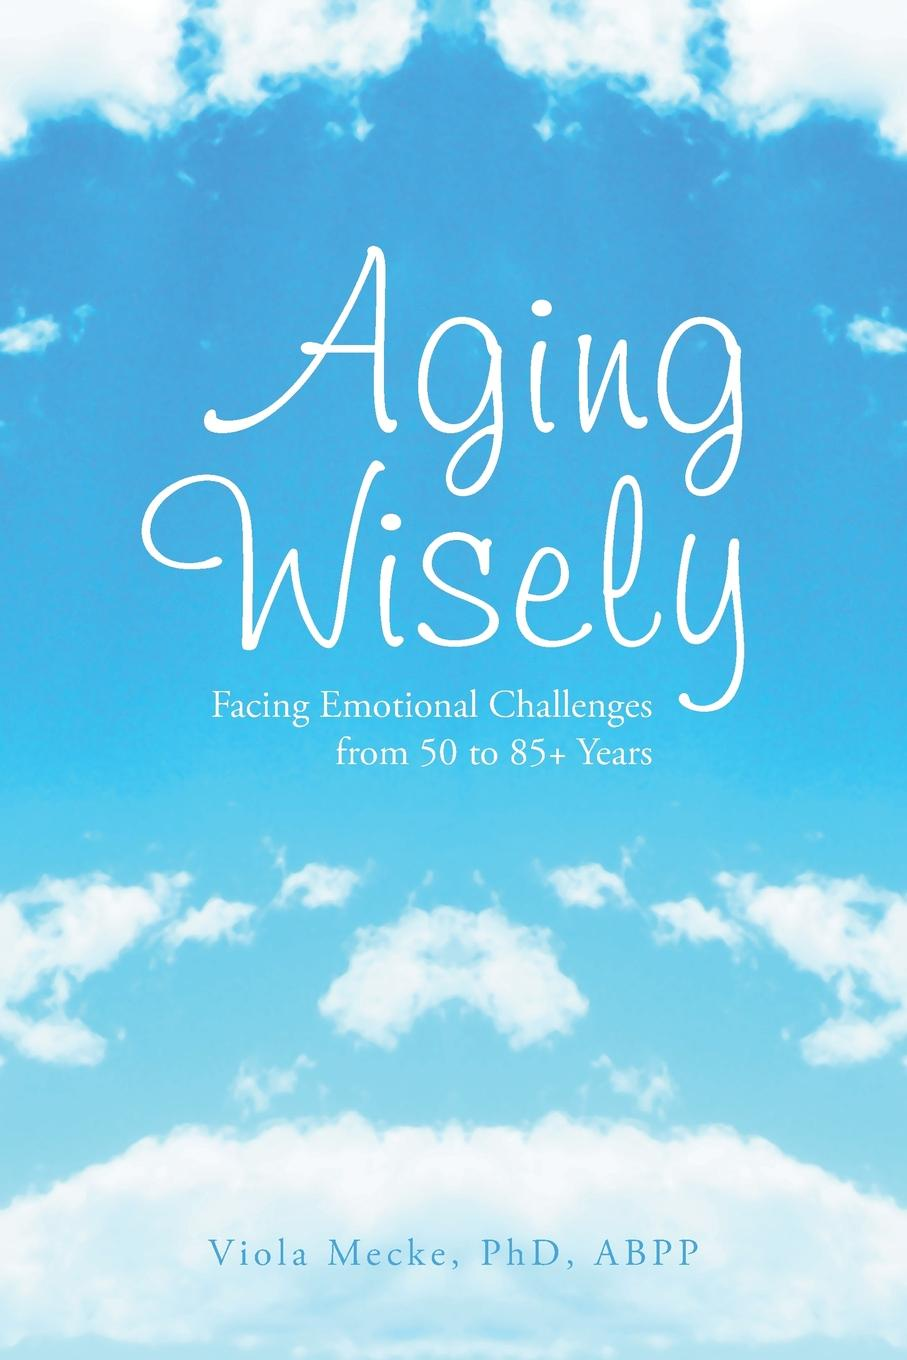 Viola Abpp Mecke Phd Aging Wisely. Facing Emotional Challenges from 50 to 85+ Years